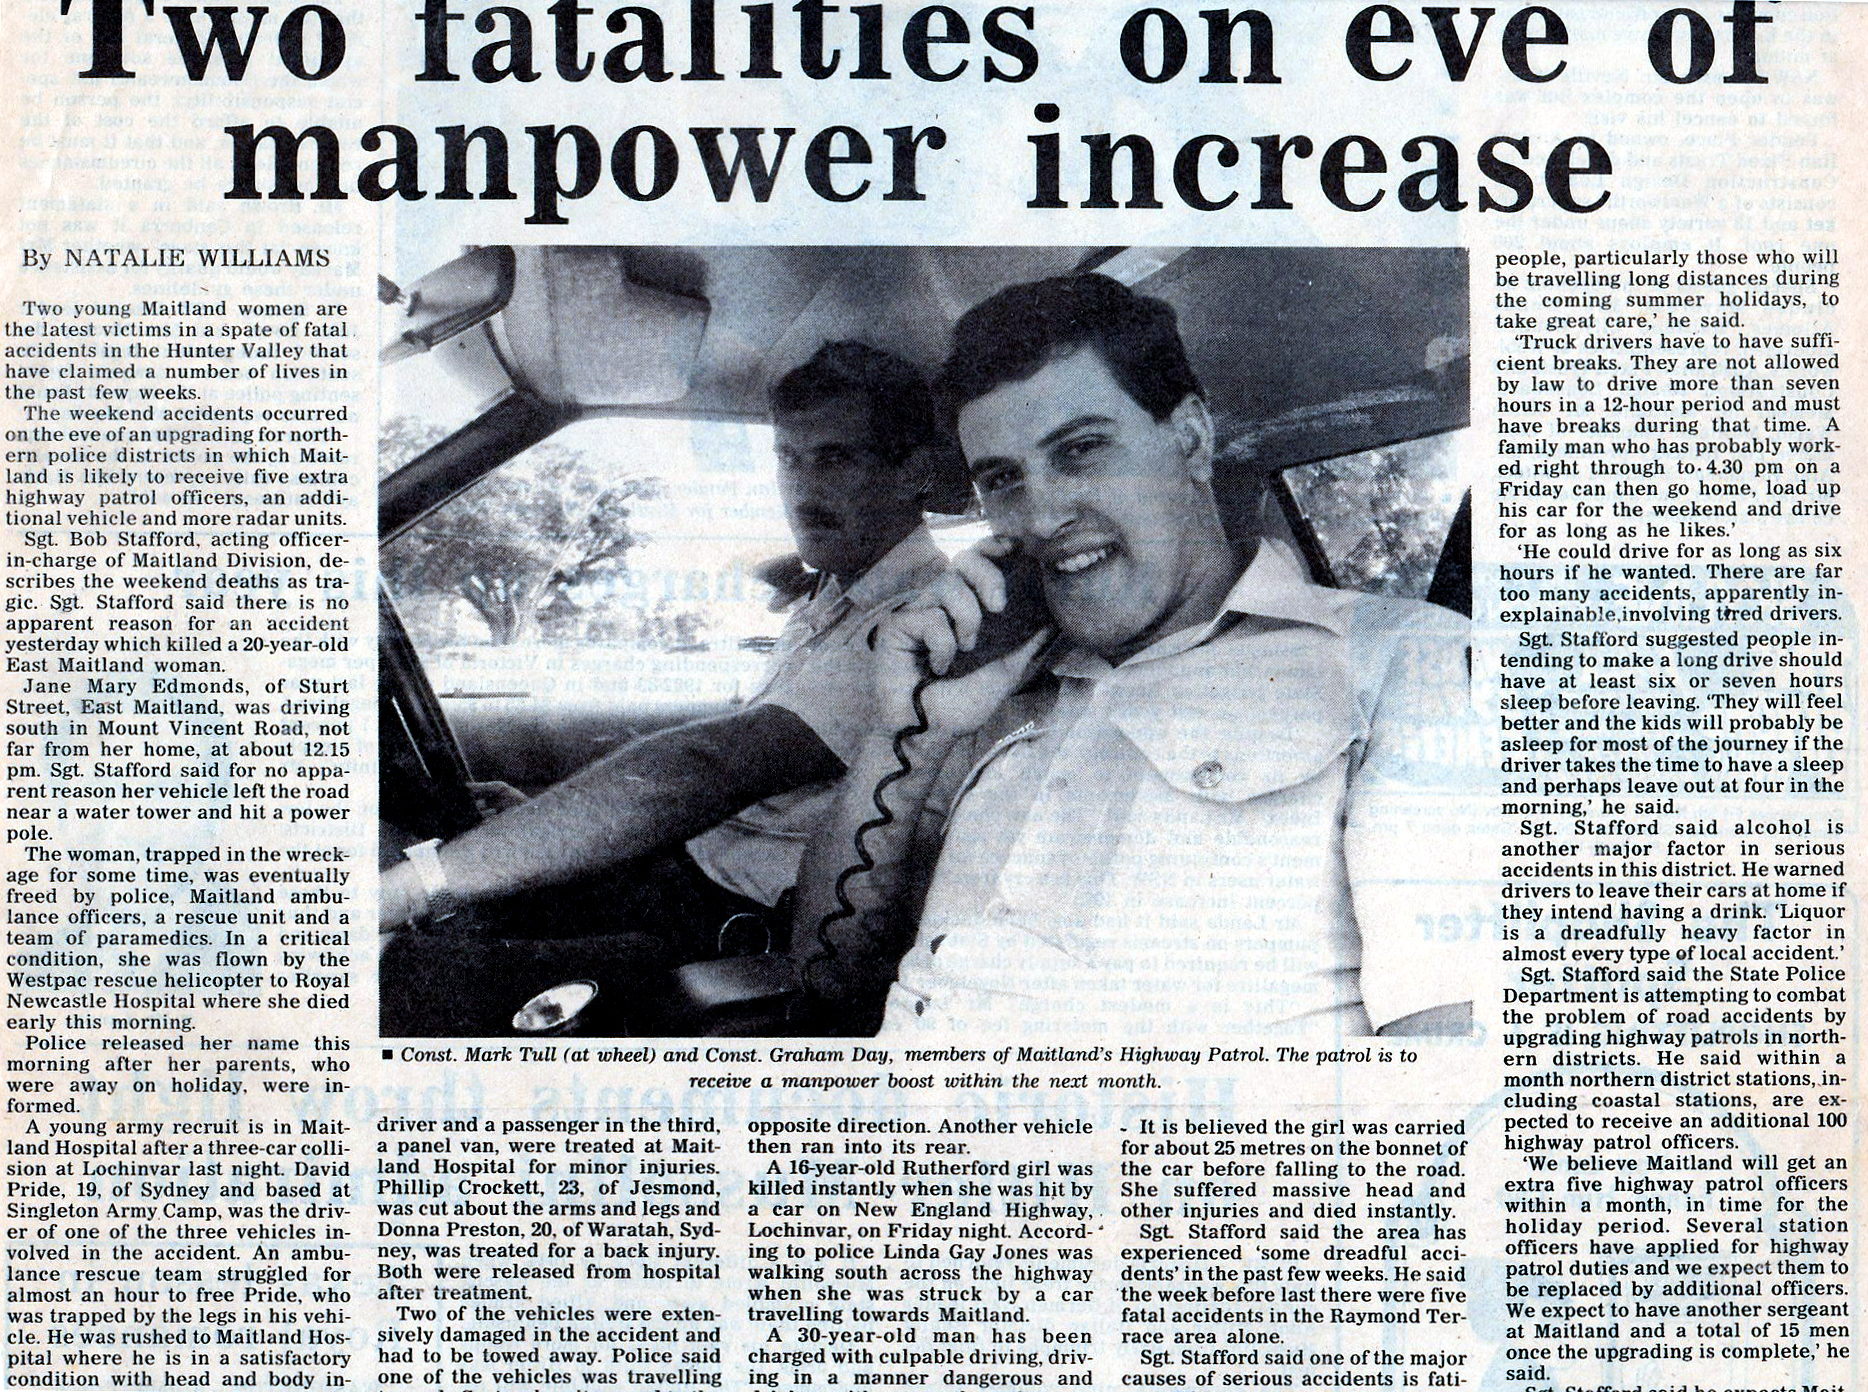 Constable Mark Tull ( Driver ) and Constable Graham Day